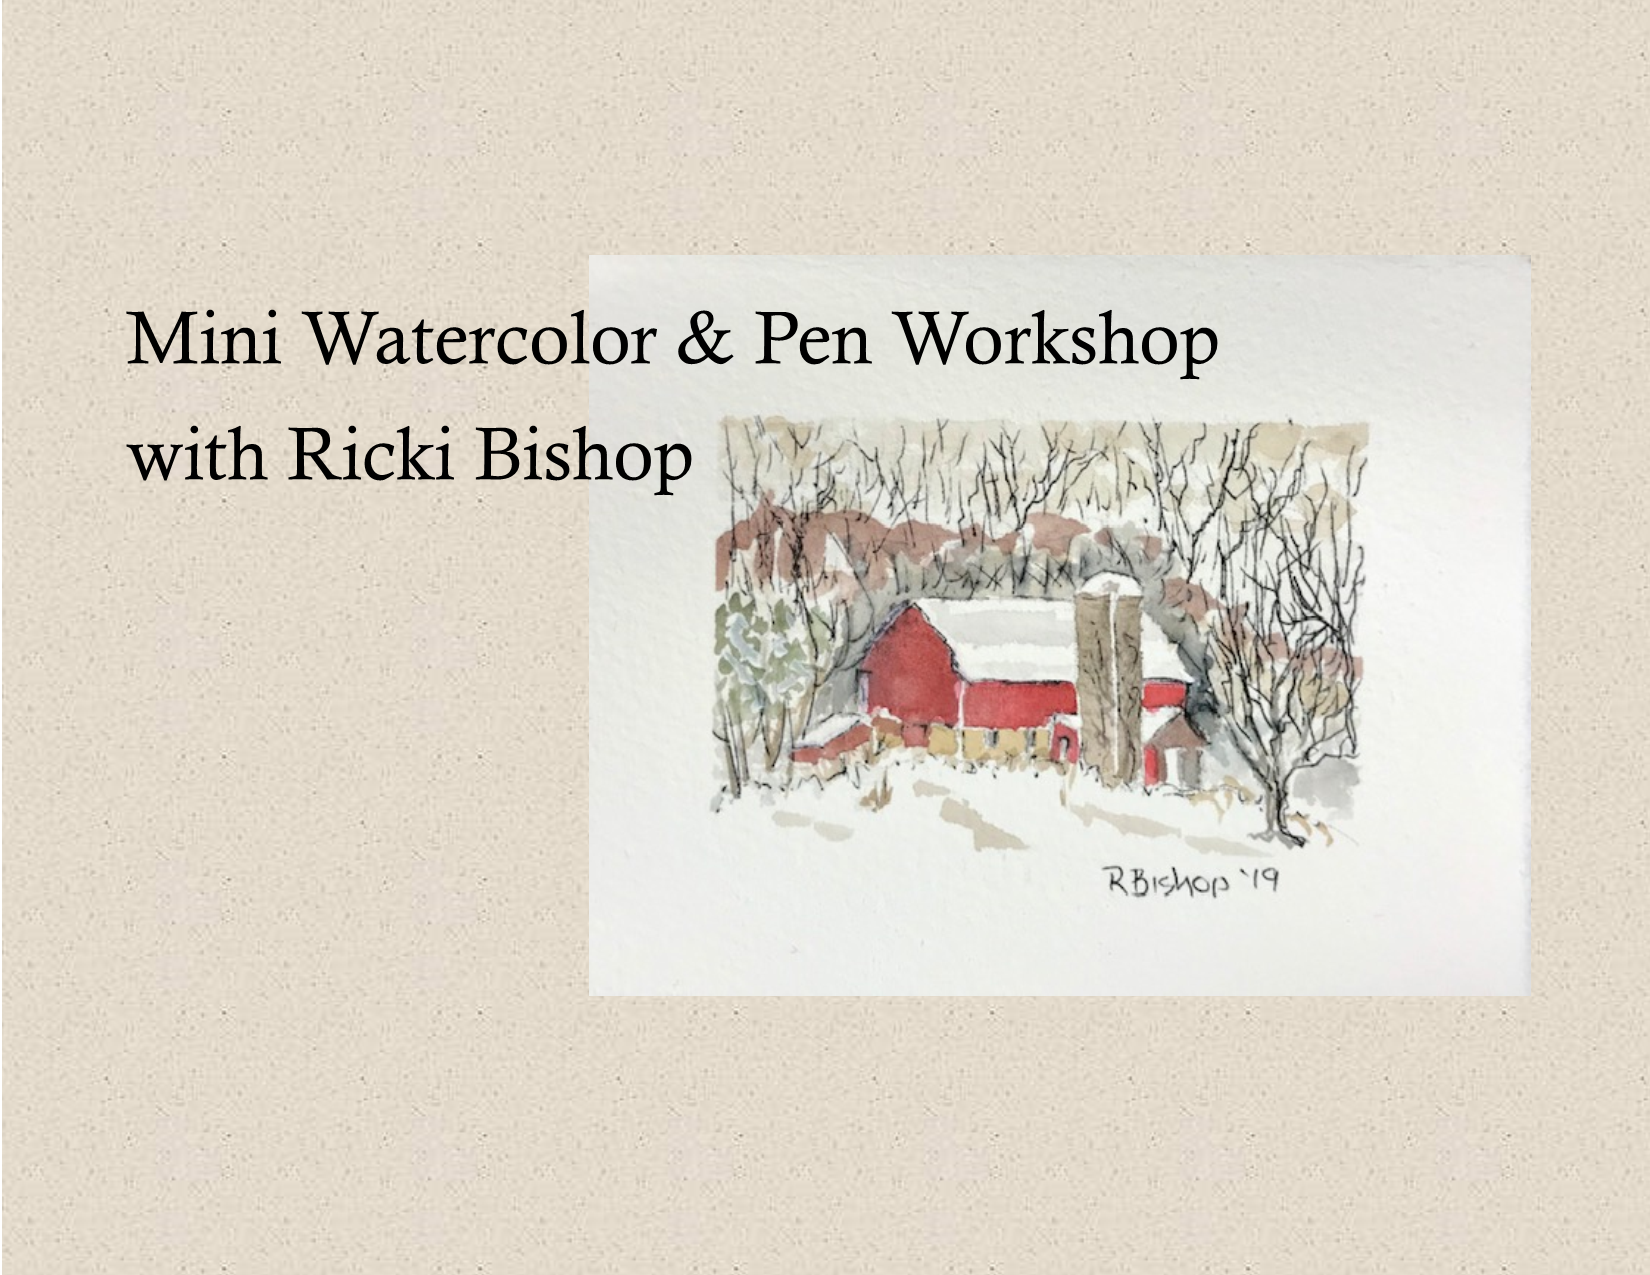 A painting of a winter barn scene along with the artist Ricki Bishop's name.